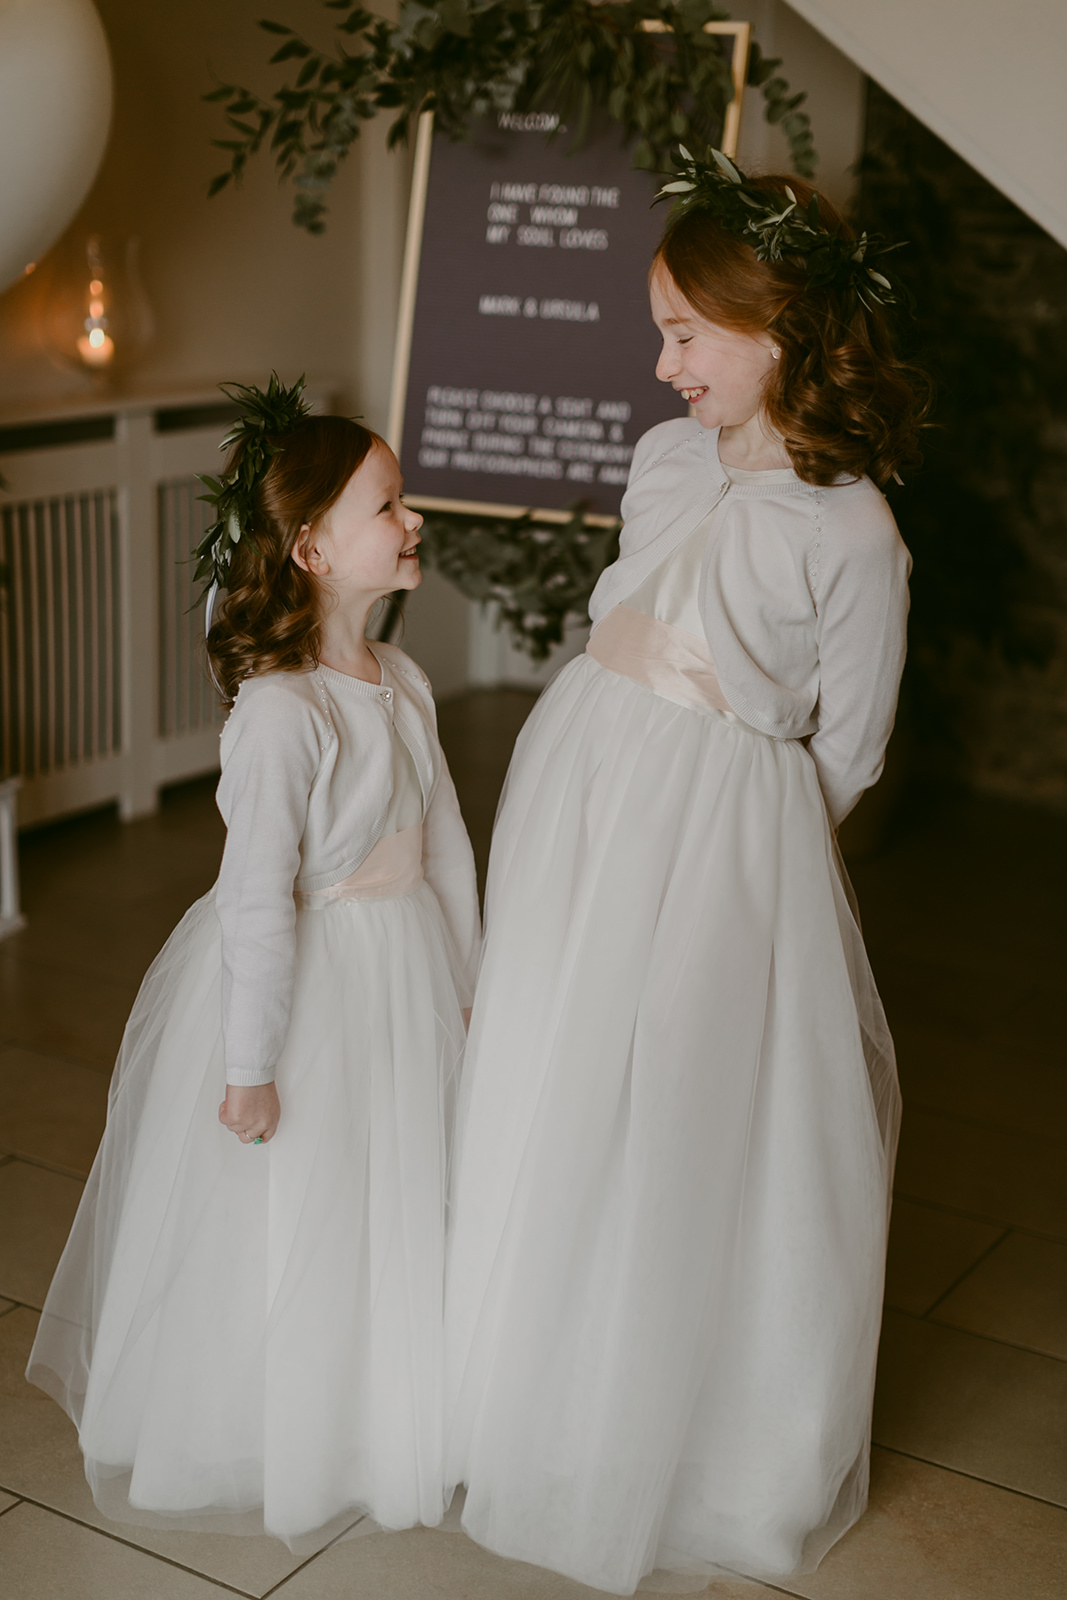 07c4254ae62 Thanks to Ursula and Mark for these beautiful photos of your wedding and flower  girls wearing our Alana flower girl dress.